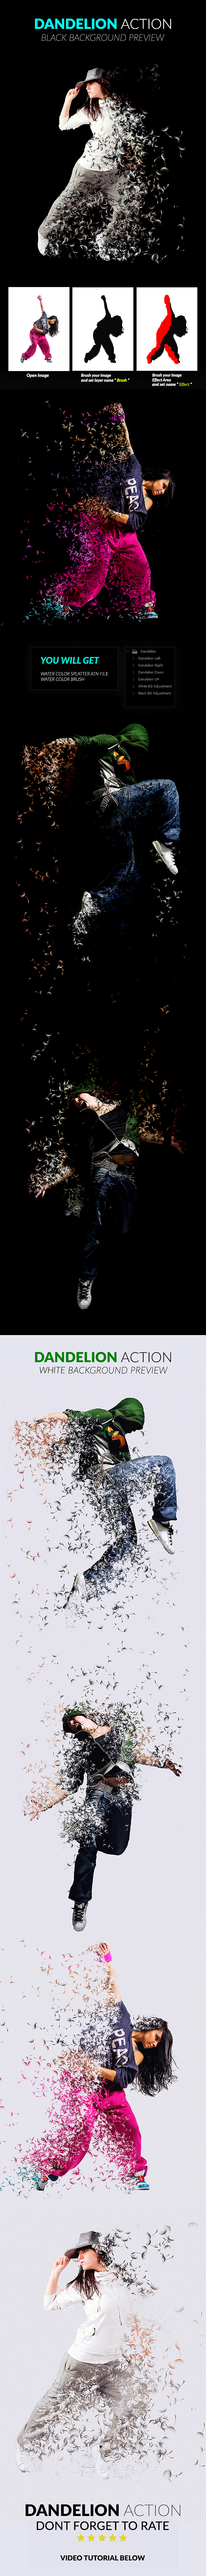 GraphicRiver - Dandelion Action